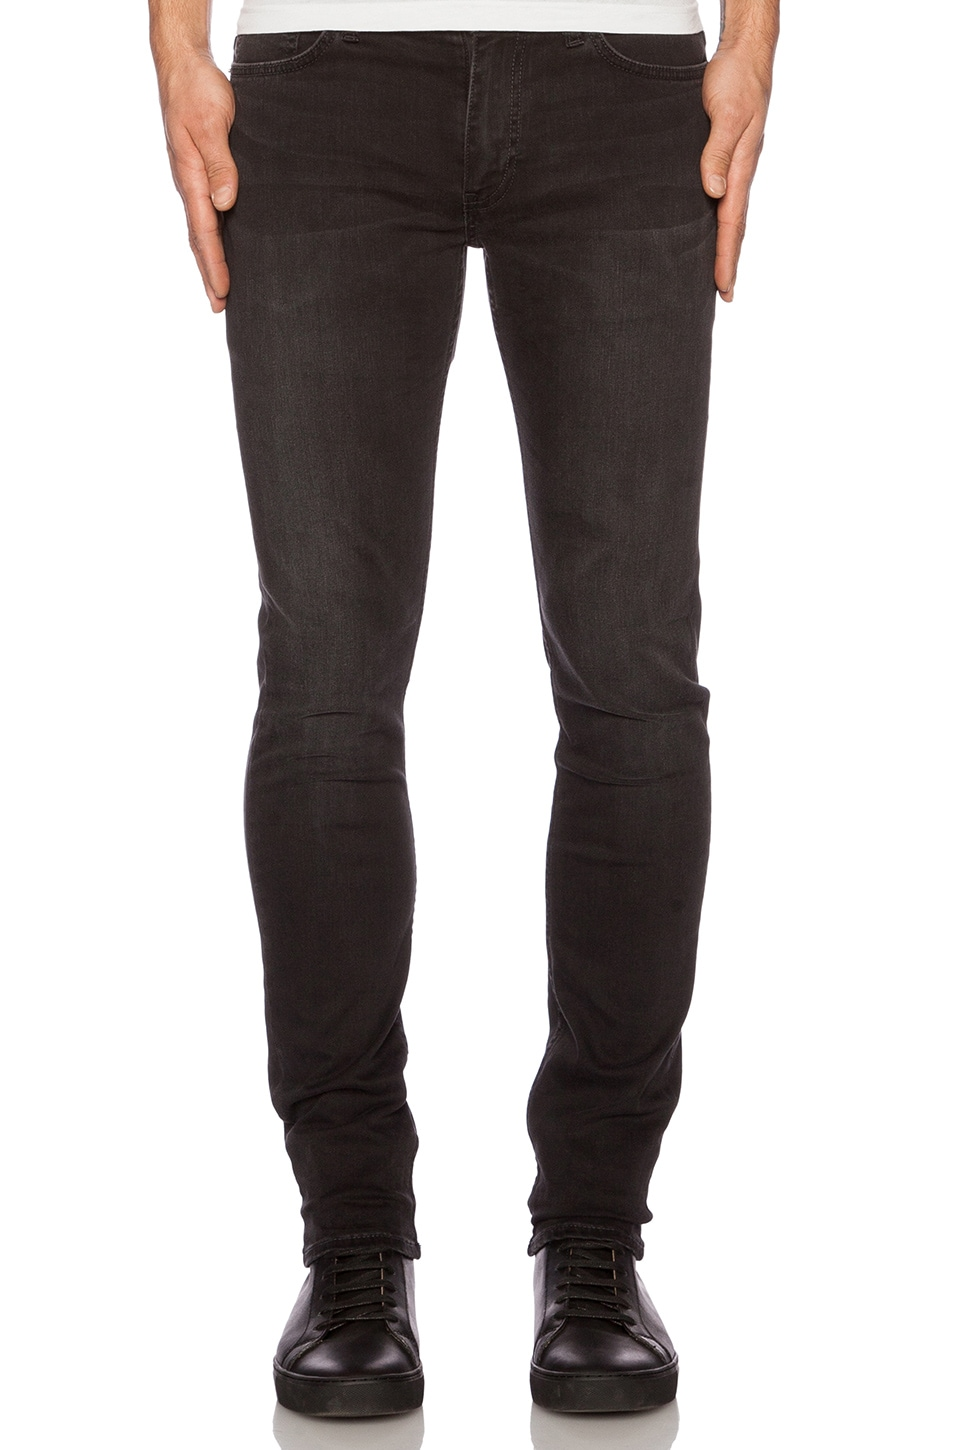 BLK DNM Jeans 25 in Fulton Black